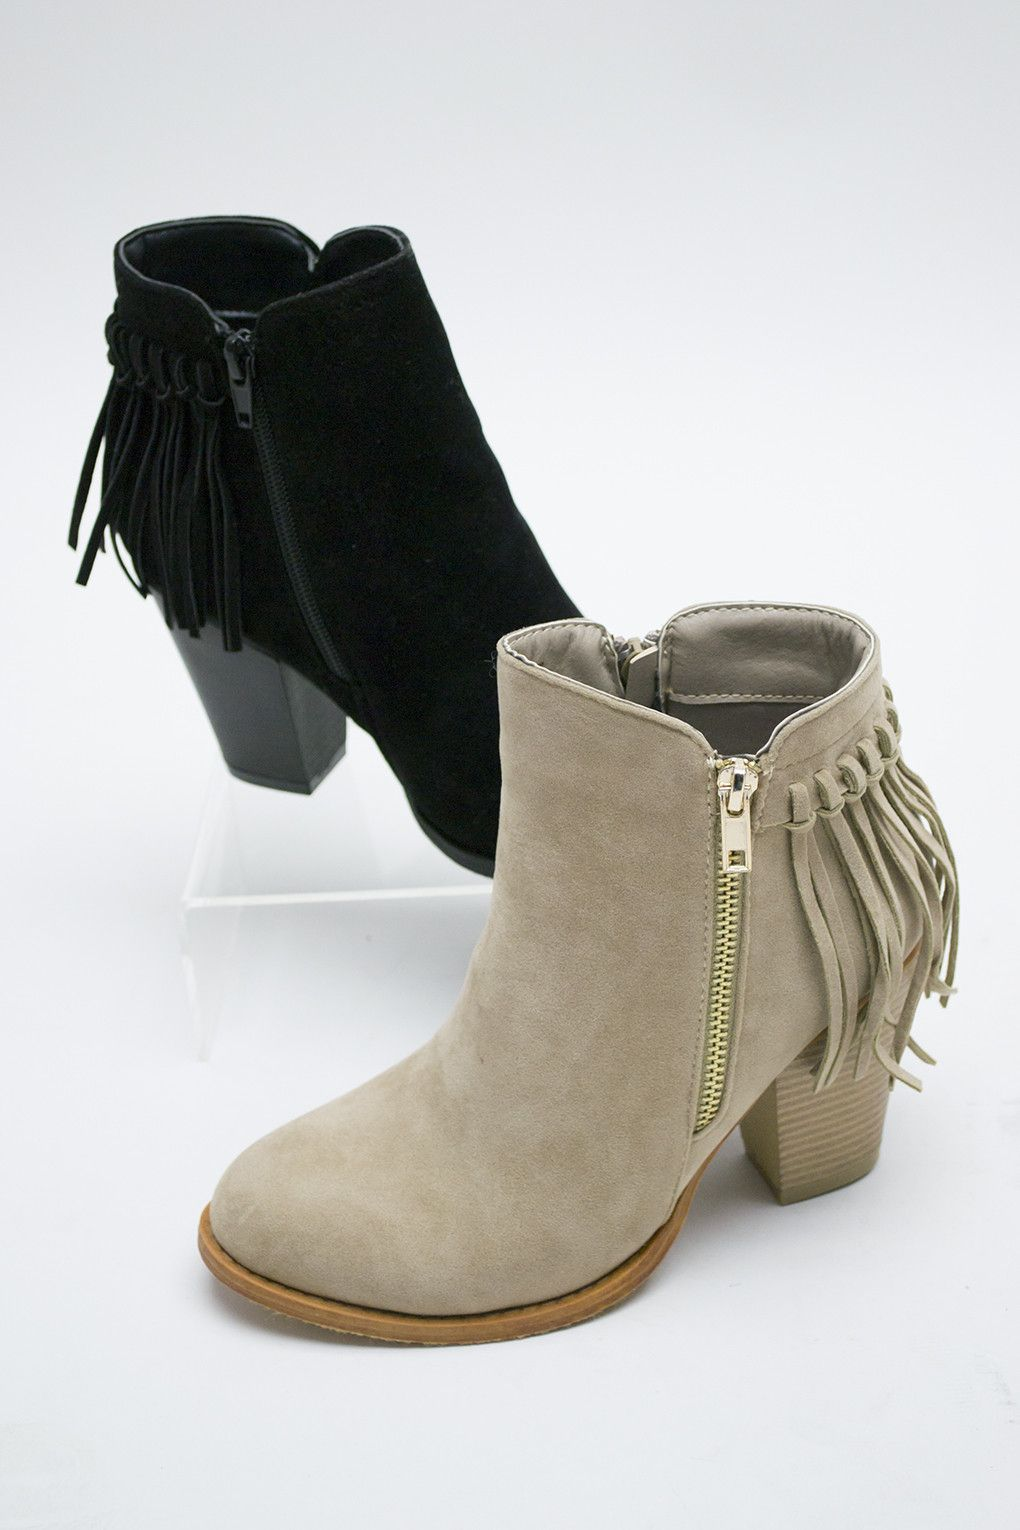 These Stone Colored Ankle Boots Are A Stunning Addition To